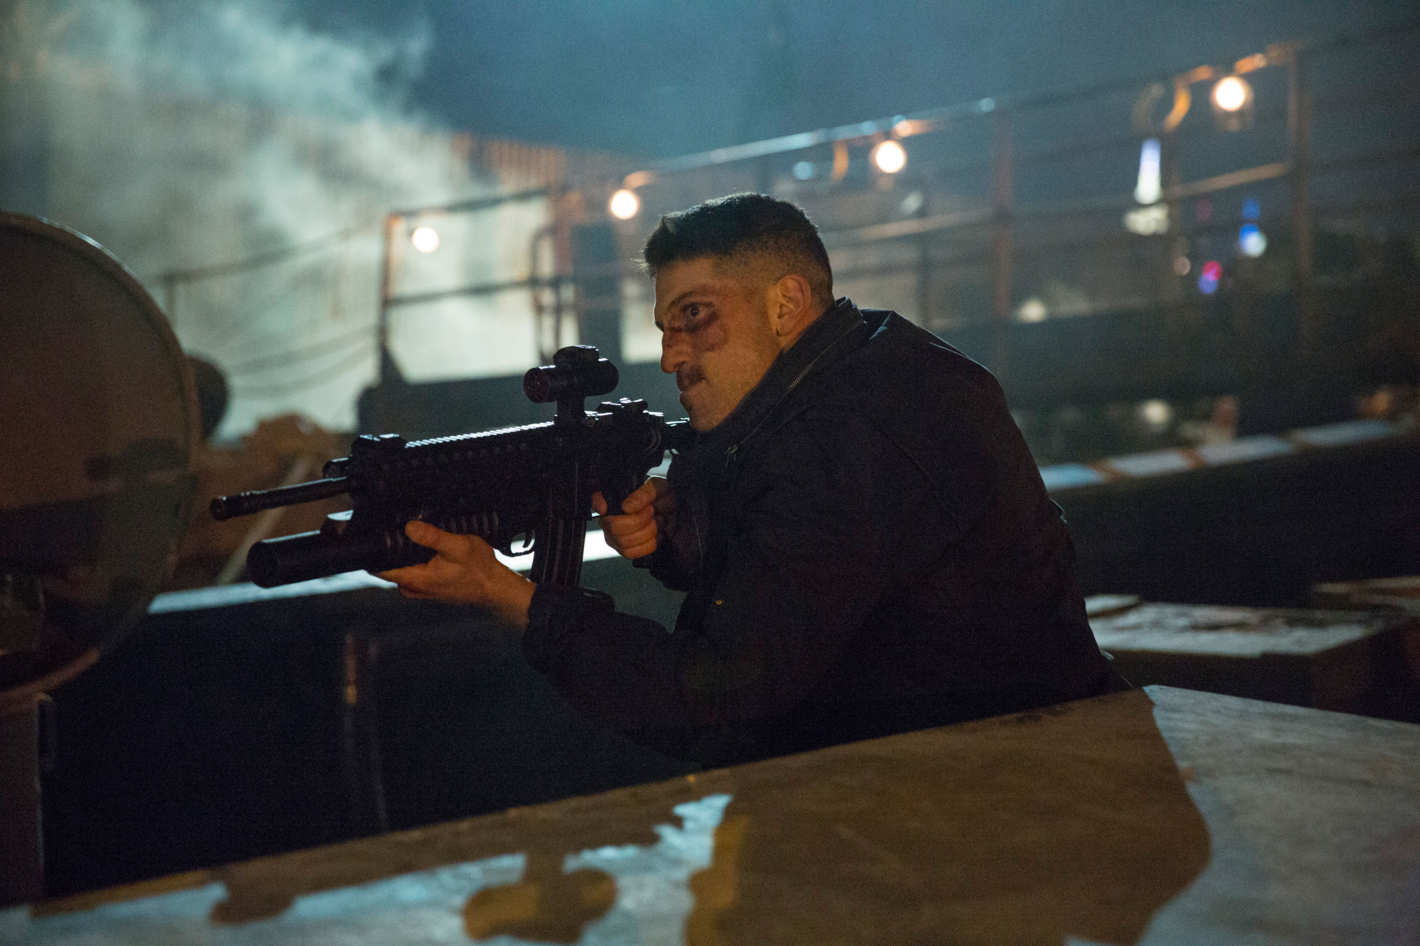 https://vl-media.fr/wp-content/uploads/2017/12/punisher_castle_violence.jpg